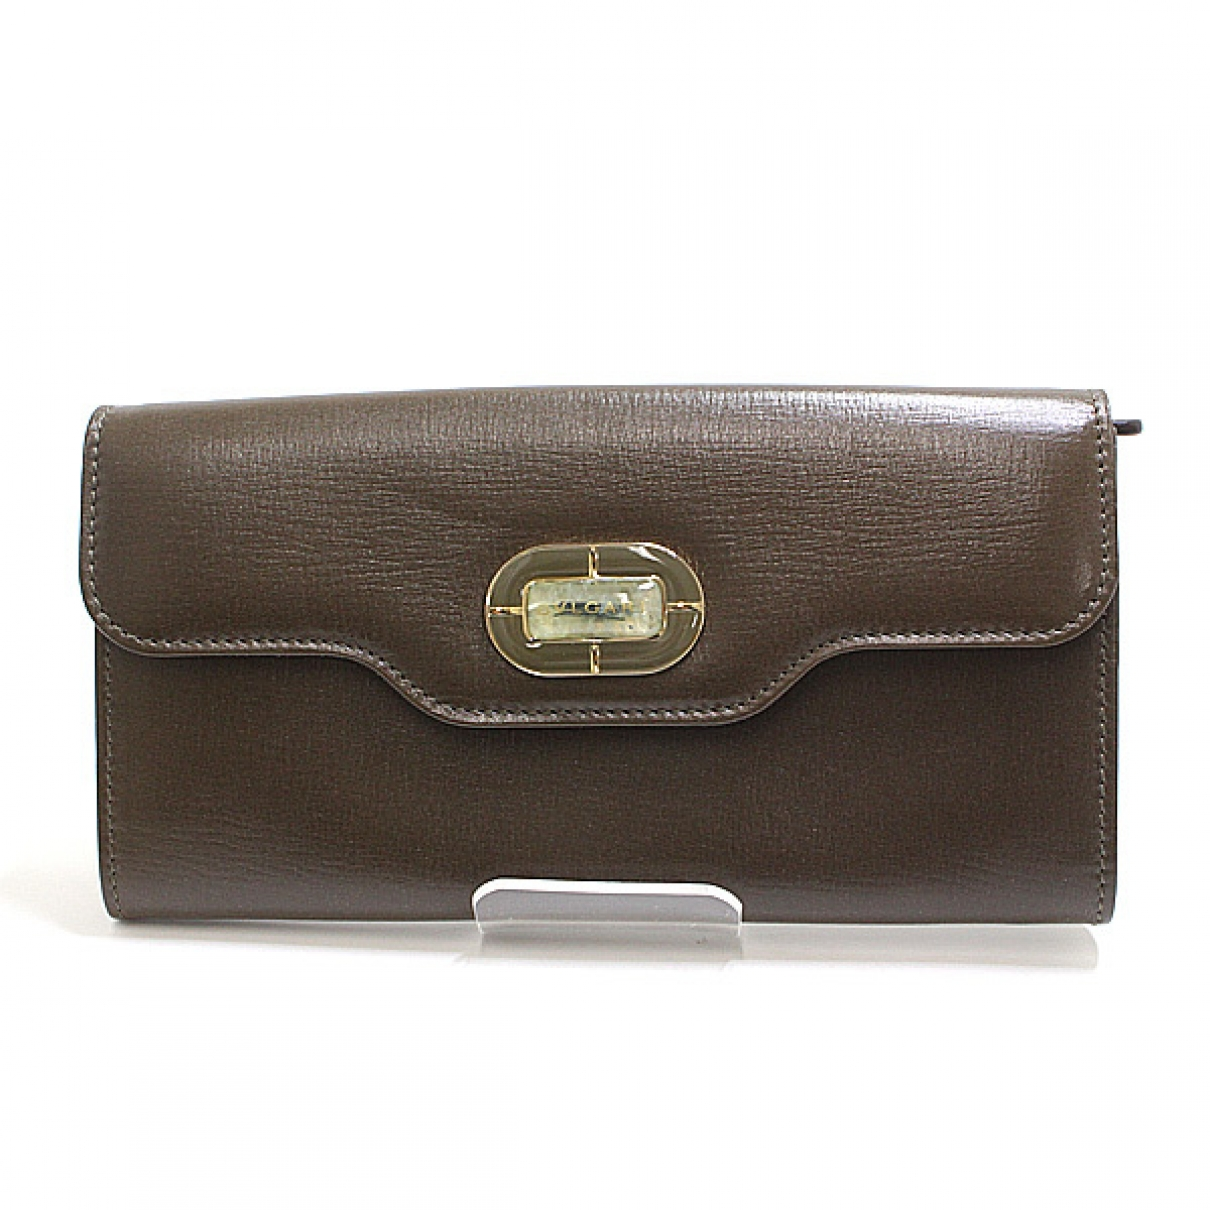 Bvlgari \N Brown Leather wallet for Women \N